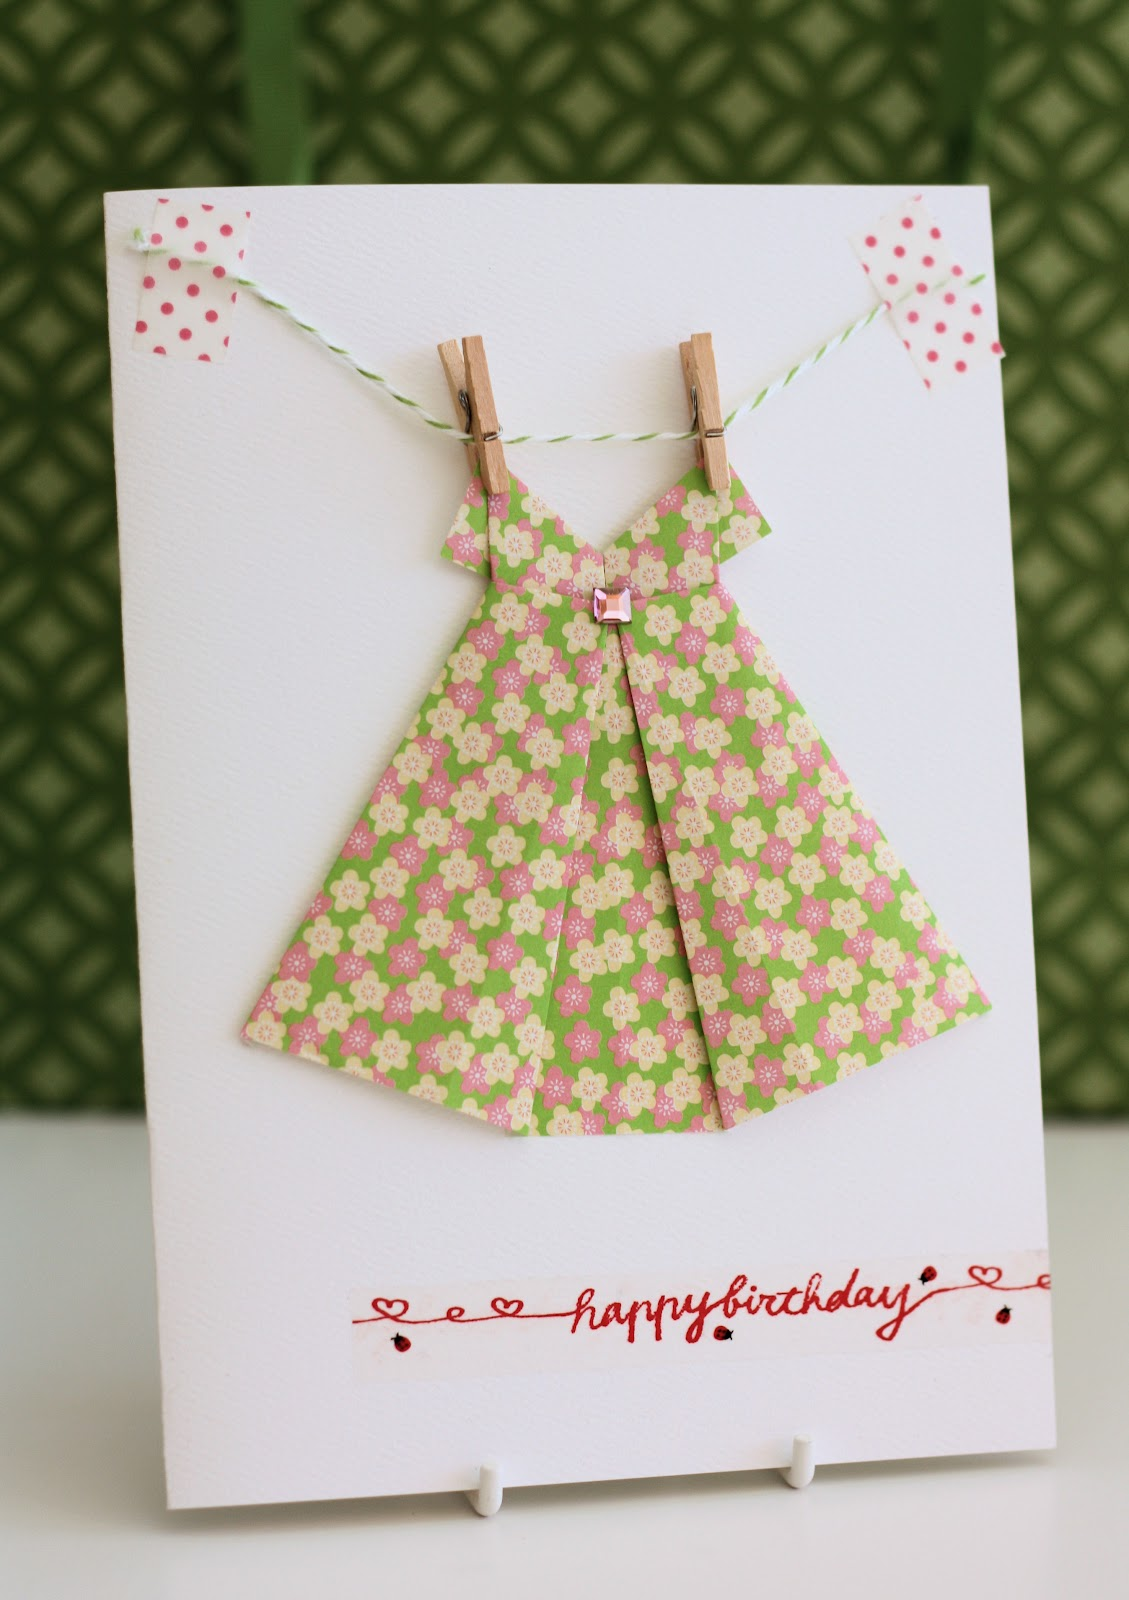 How to Make an Origami One Piece Dress Step by Step Instructions ... | 1600x1129